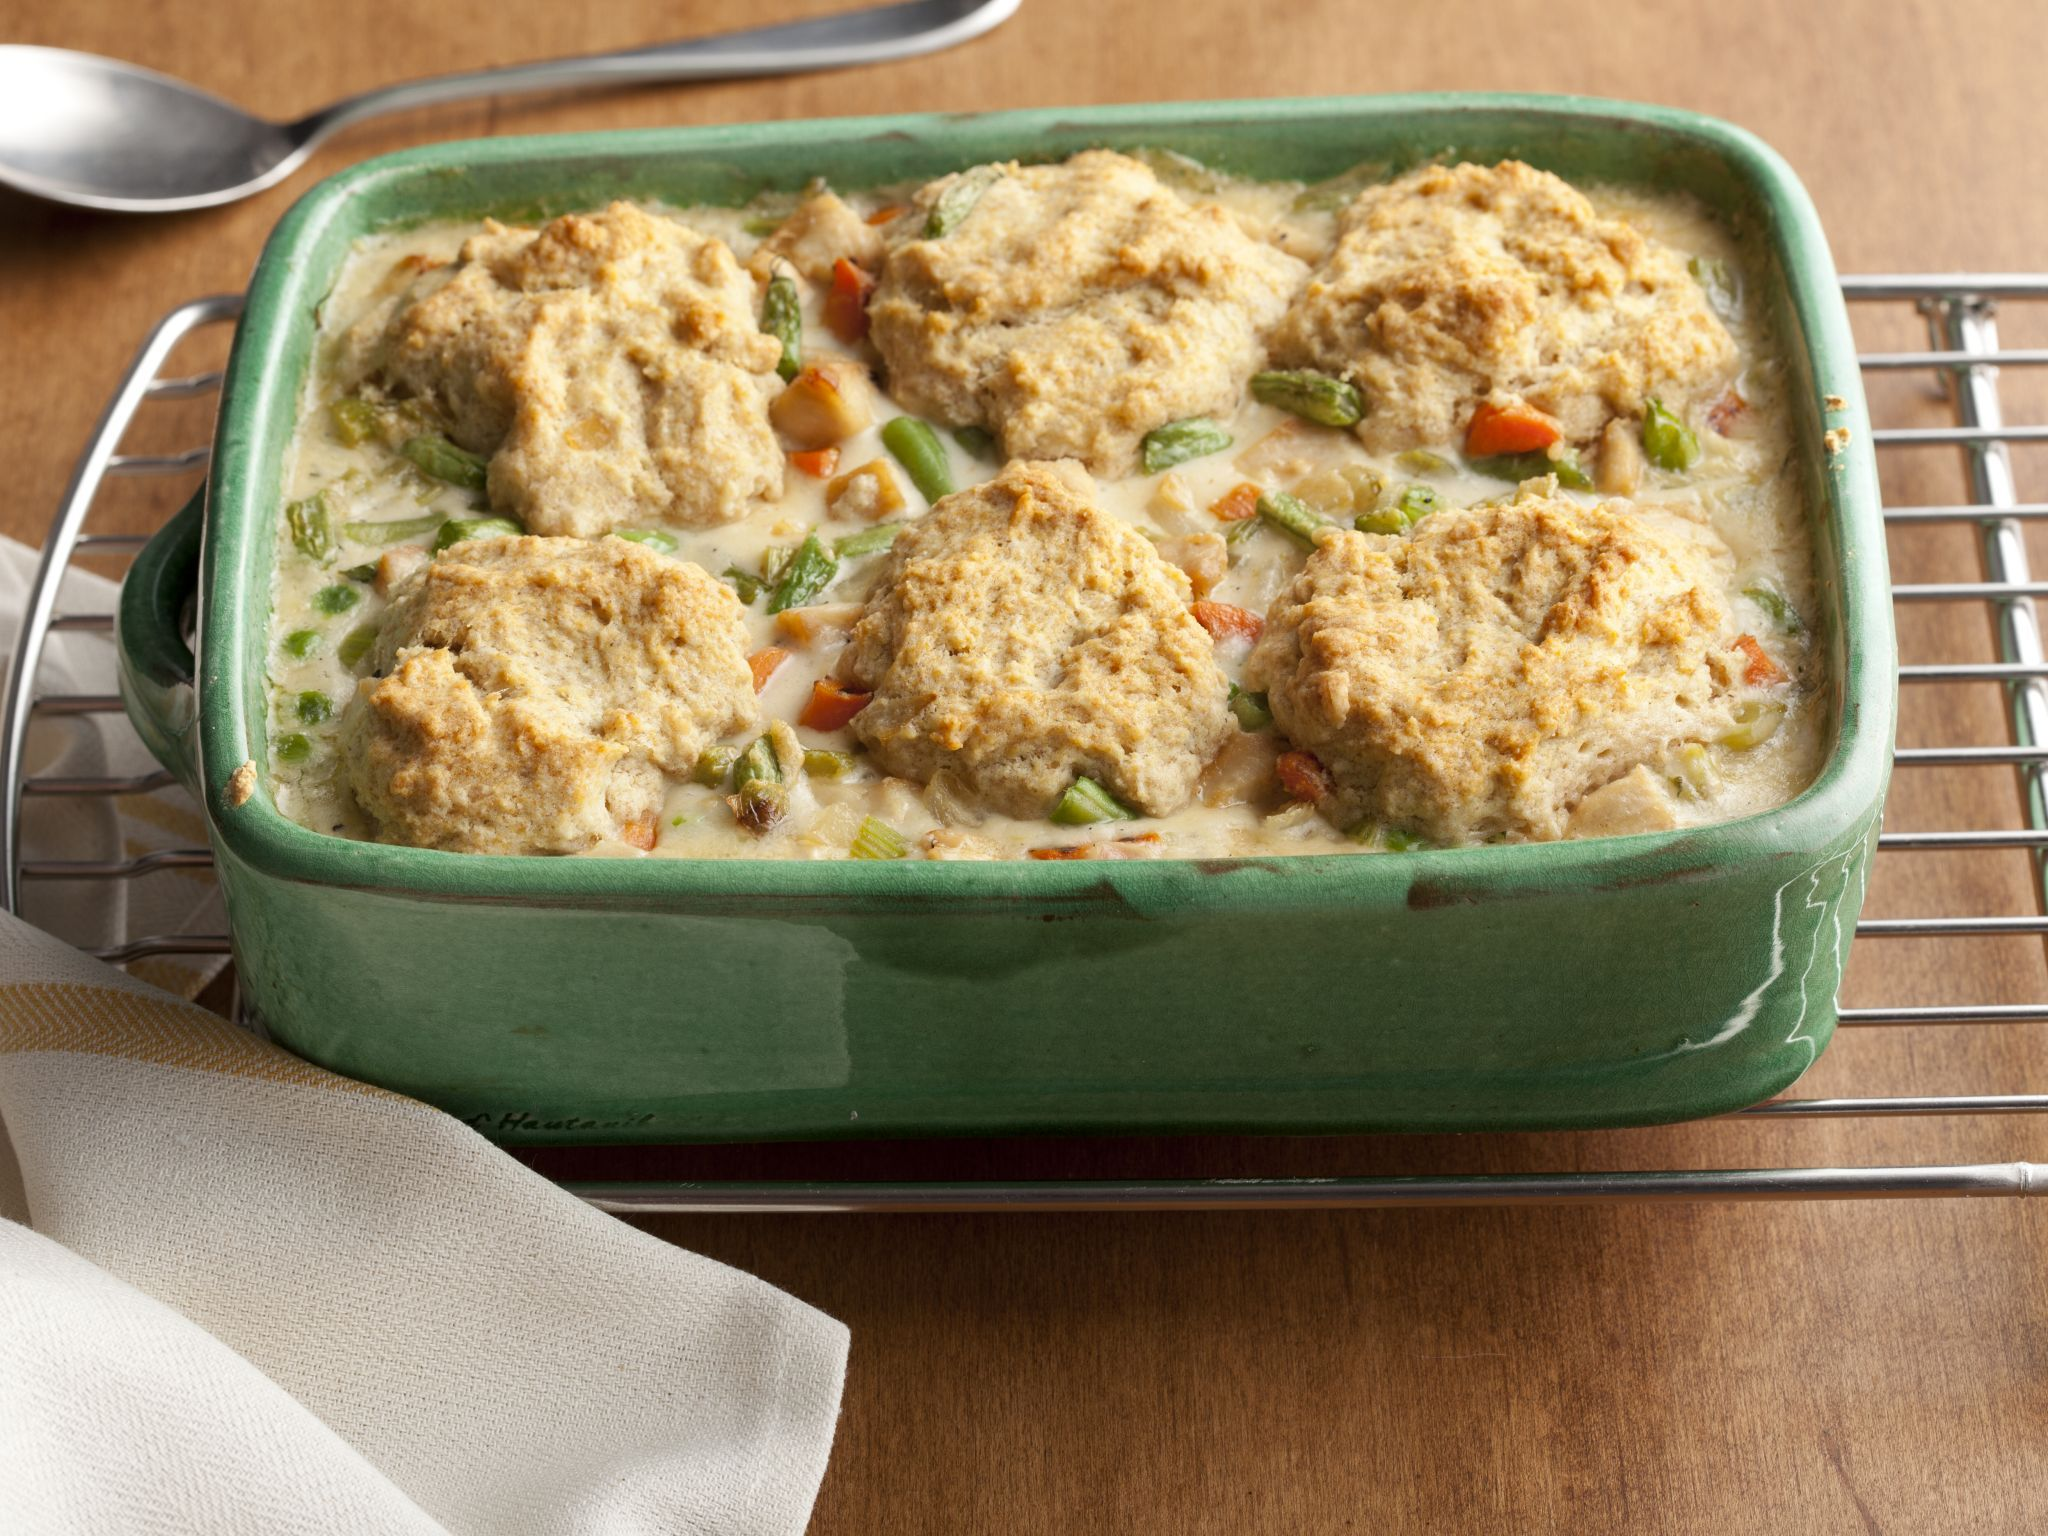 Healthy meal makeovers food network biscuit pot pie pot pies healthy meal makeovers food network forumfinder Image collections